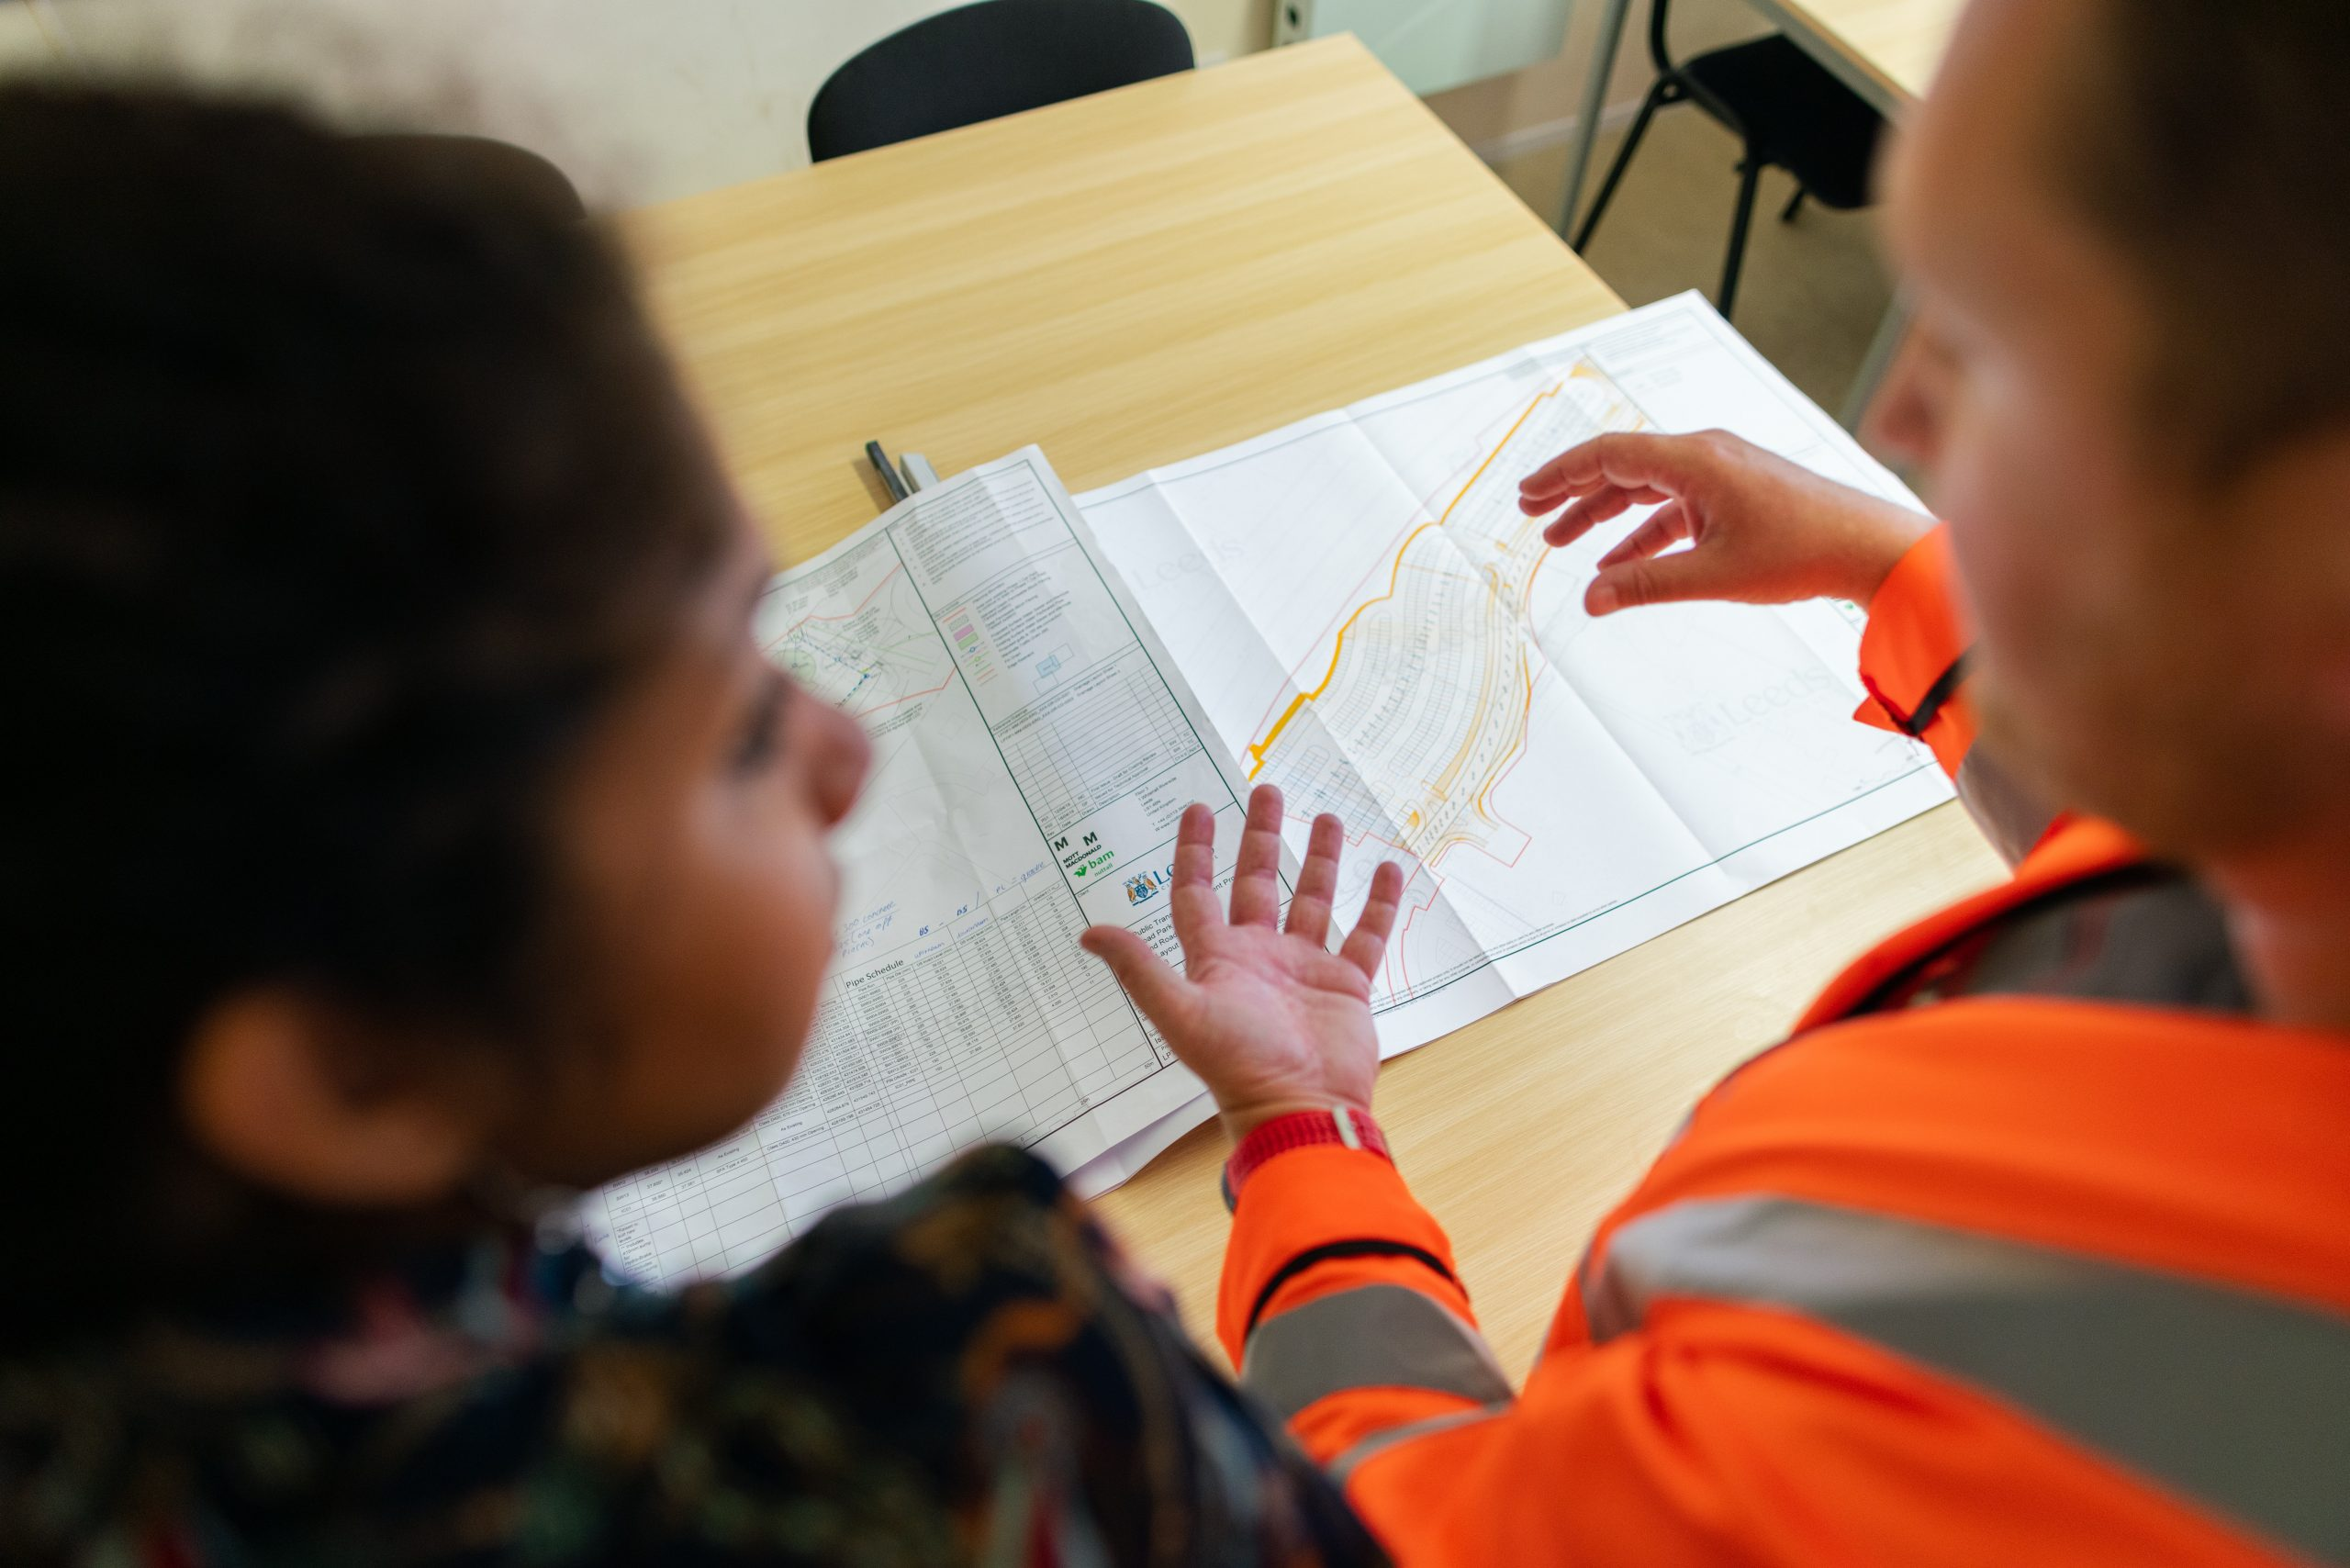 Female civil engineer discusses weir project with colleague